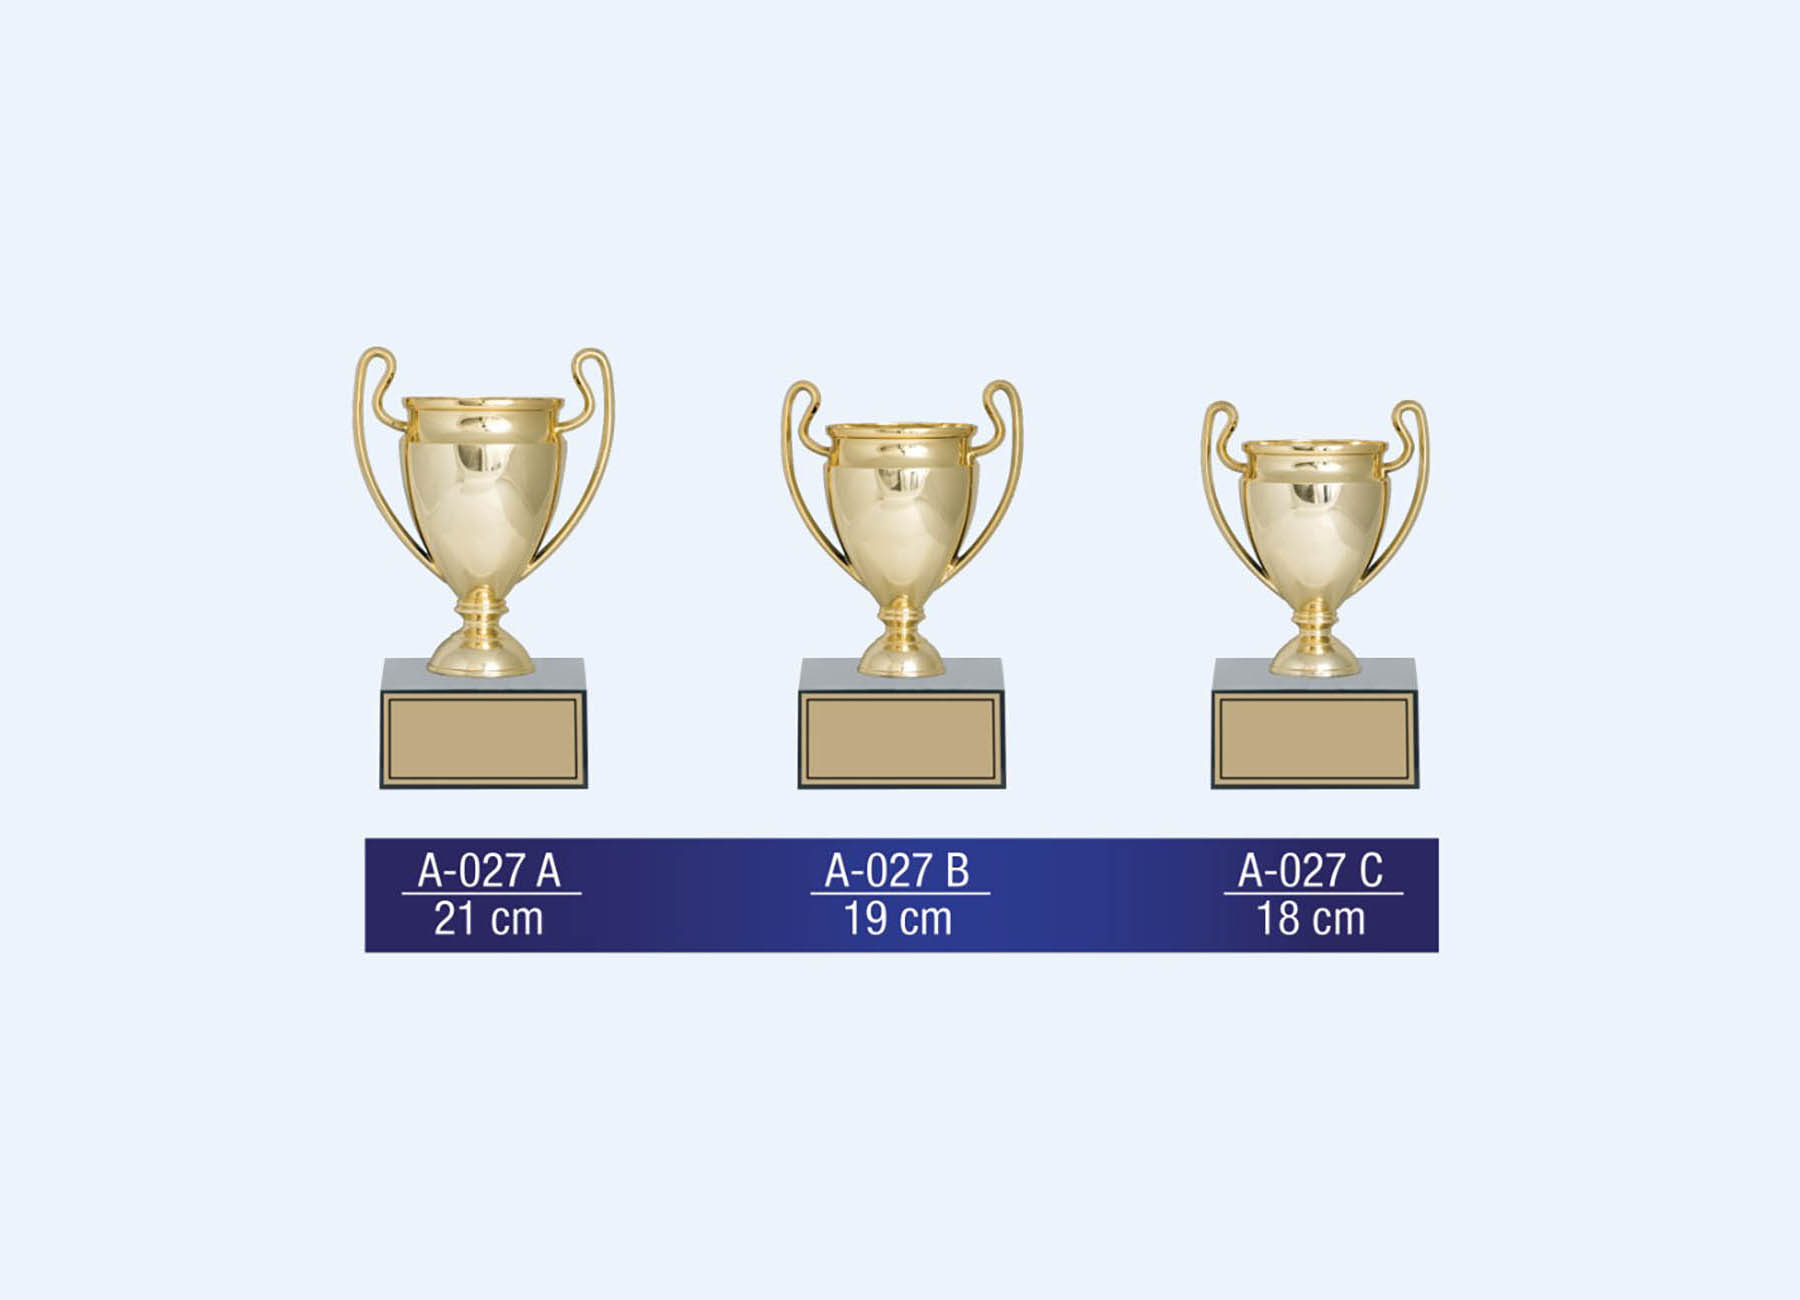 A-027 General Cups